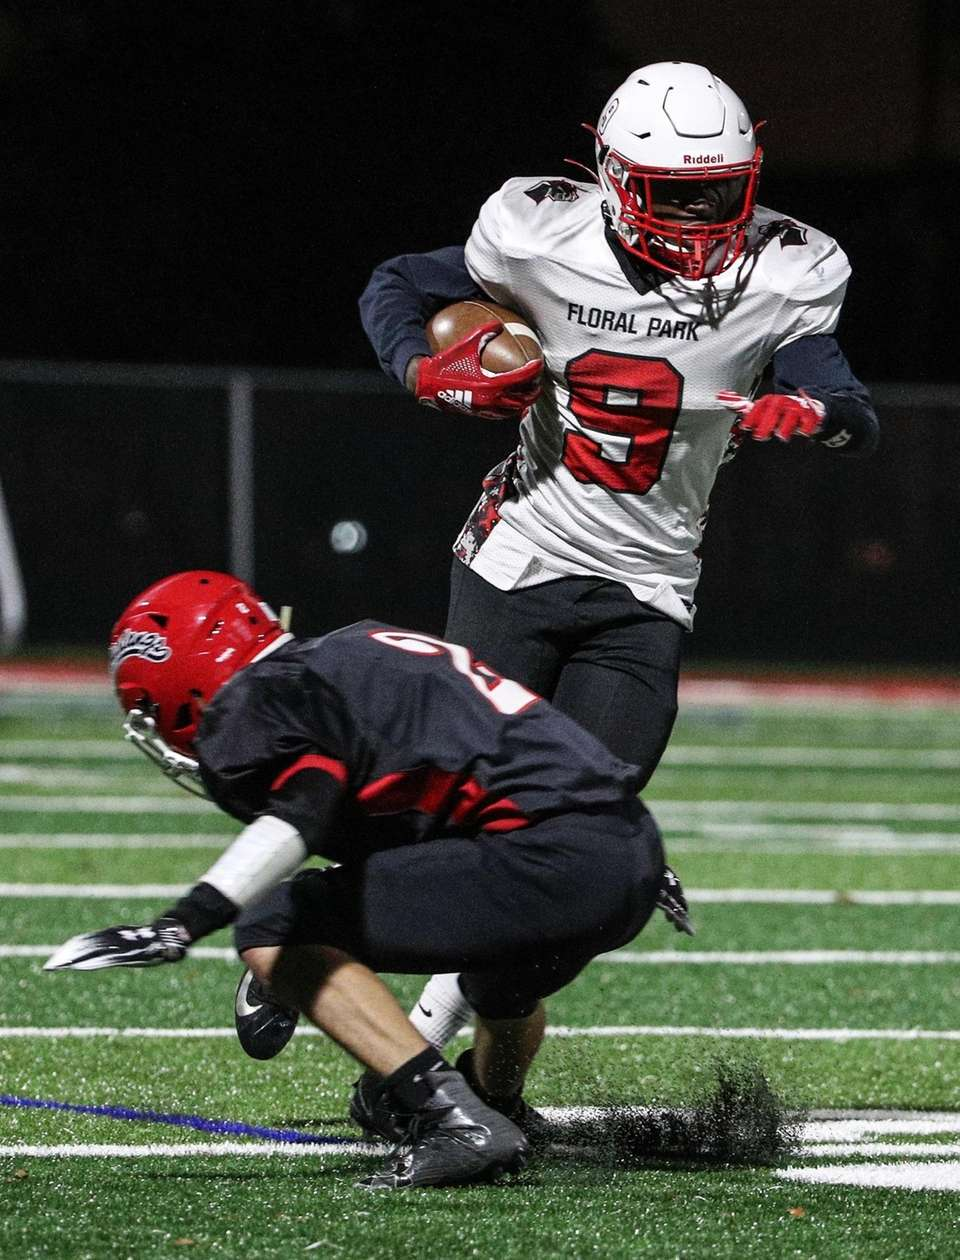 Taliek Nelson of Floral Park cuts back behind